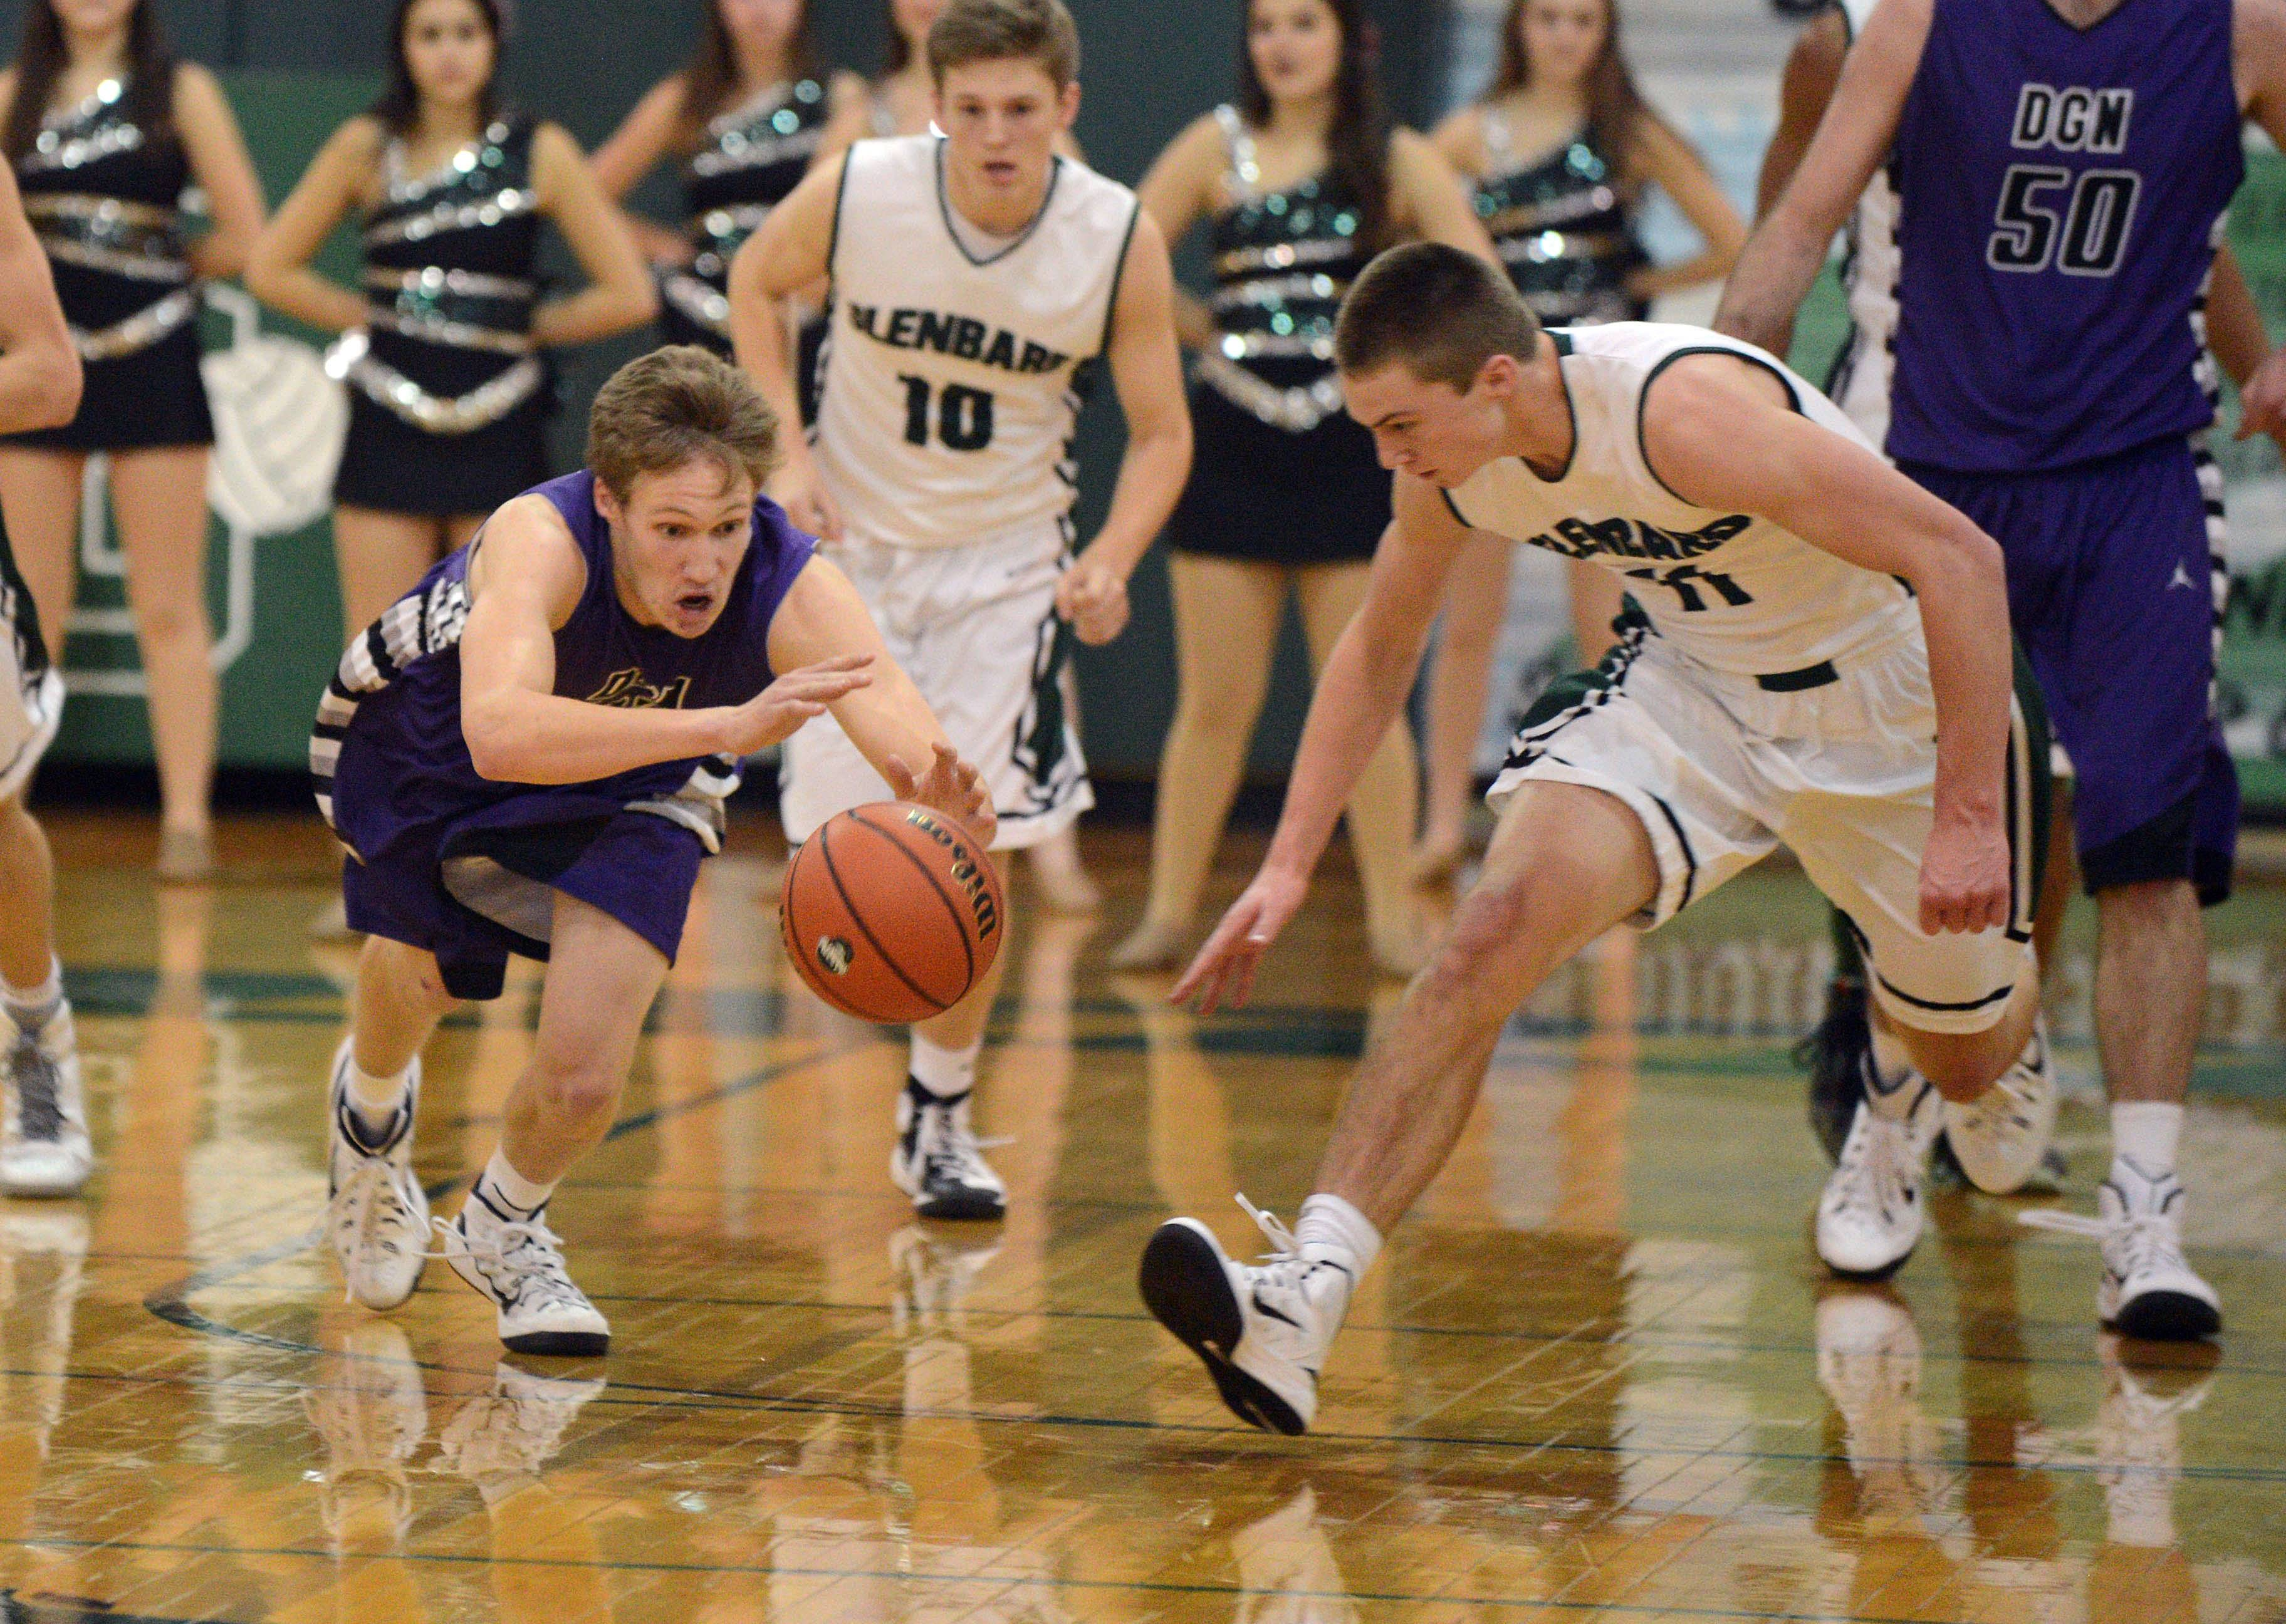 Images: Downers Grove North vs. Glenbard West, boys basketball